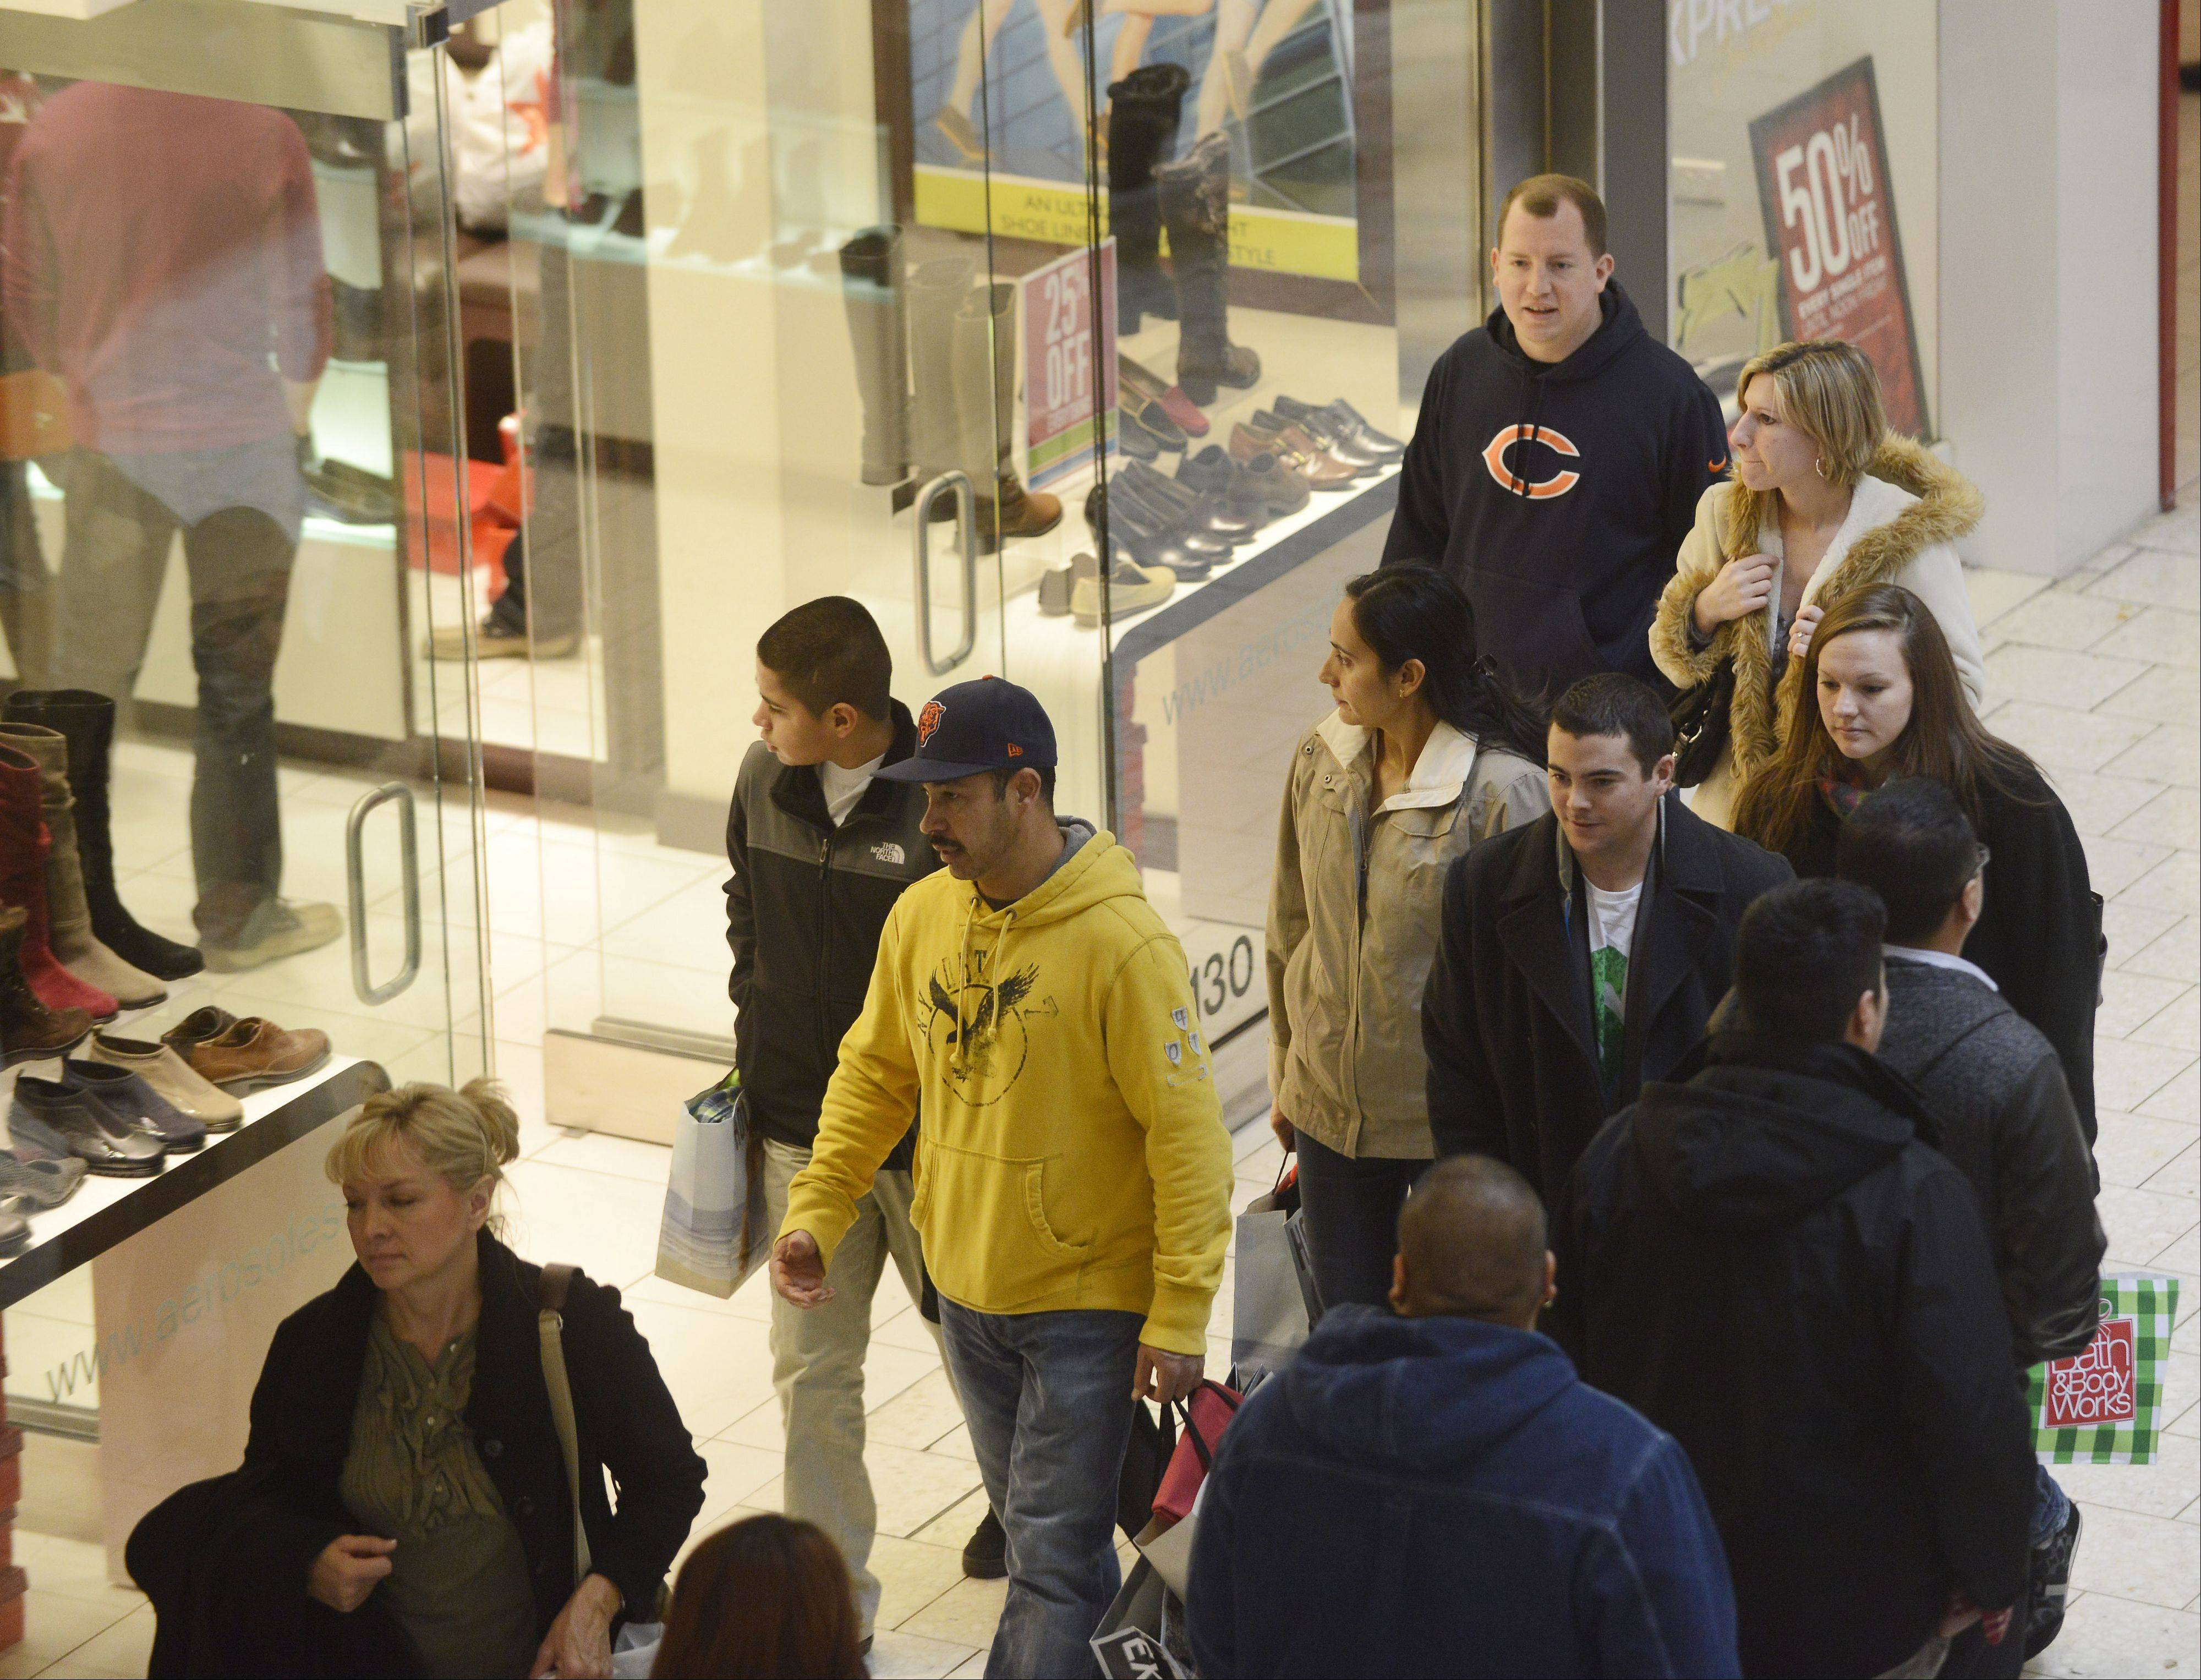 JOE LEWNARD/jlewnard@dailyherald.comShoppers look for deals Friday at Woodfield Mall in Schaumburg.